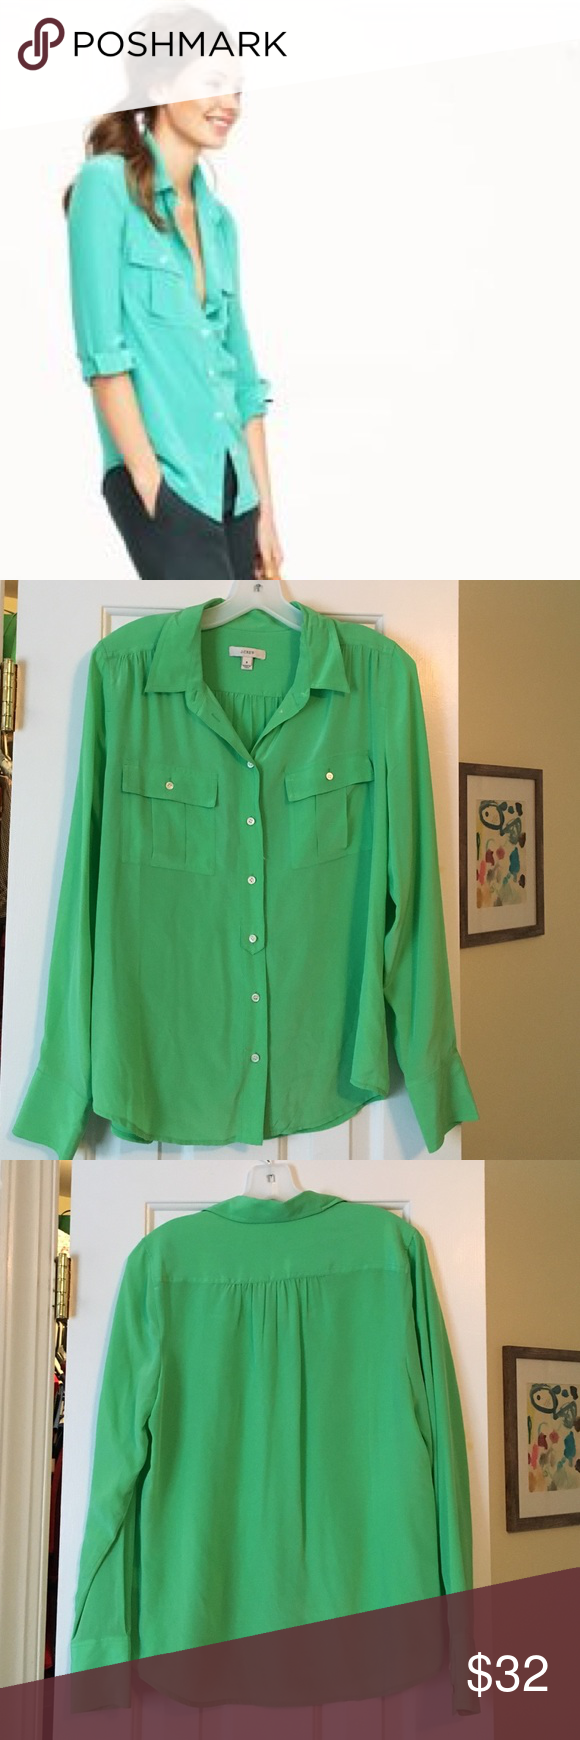 01967f06 J.Crew green silk blouse Beautiful emerald green silk blouse. 100% silk,  button-down collared shirt, excellent used condition. J. Crew Tops Button  Down ...